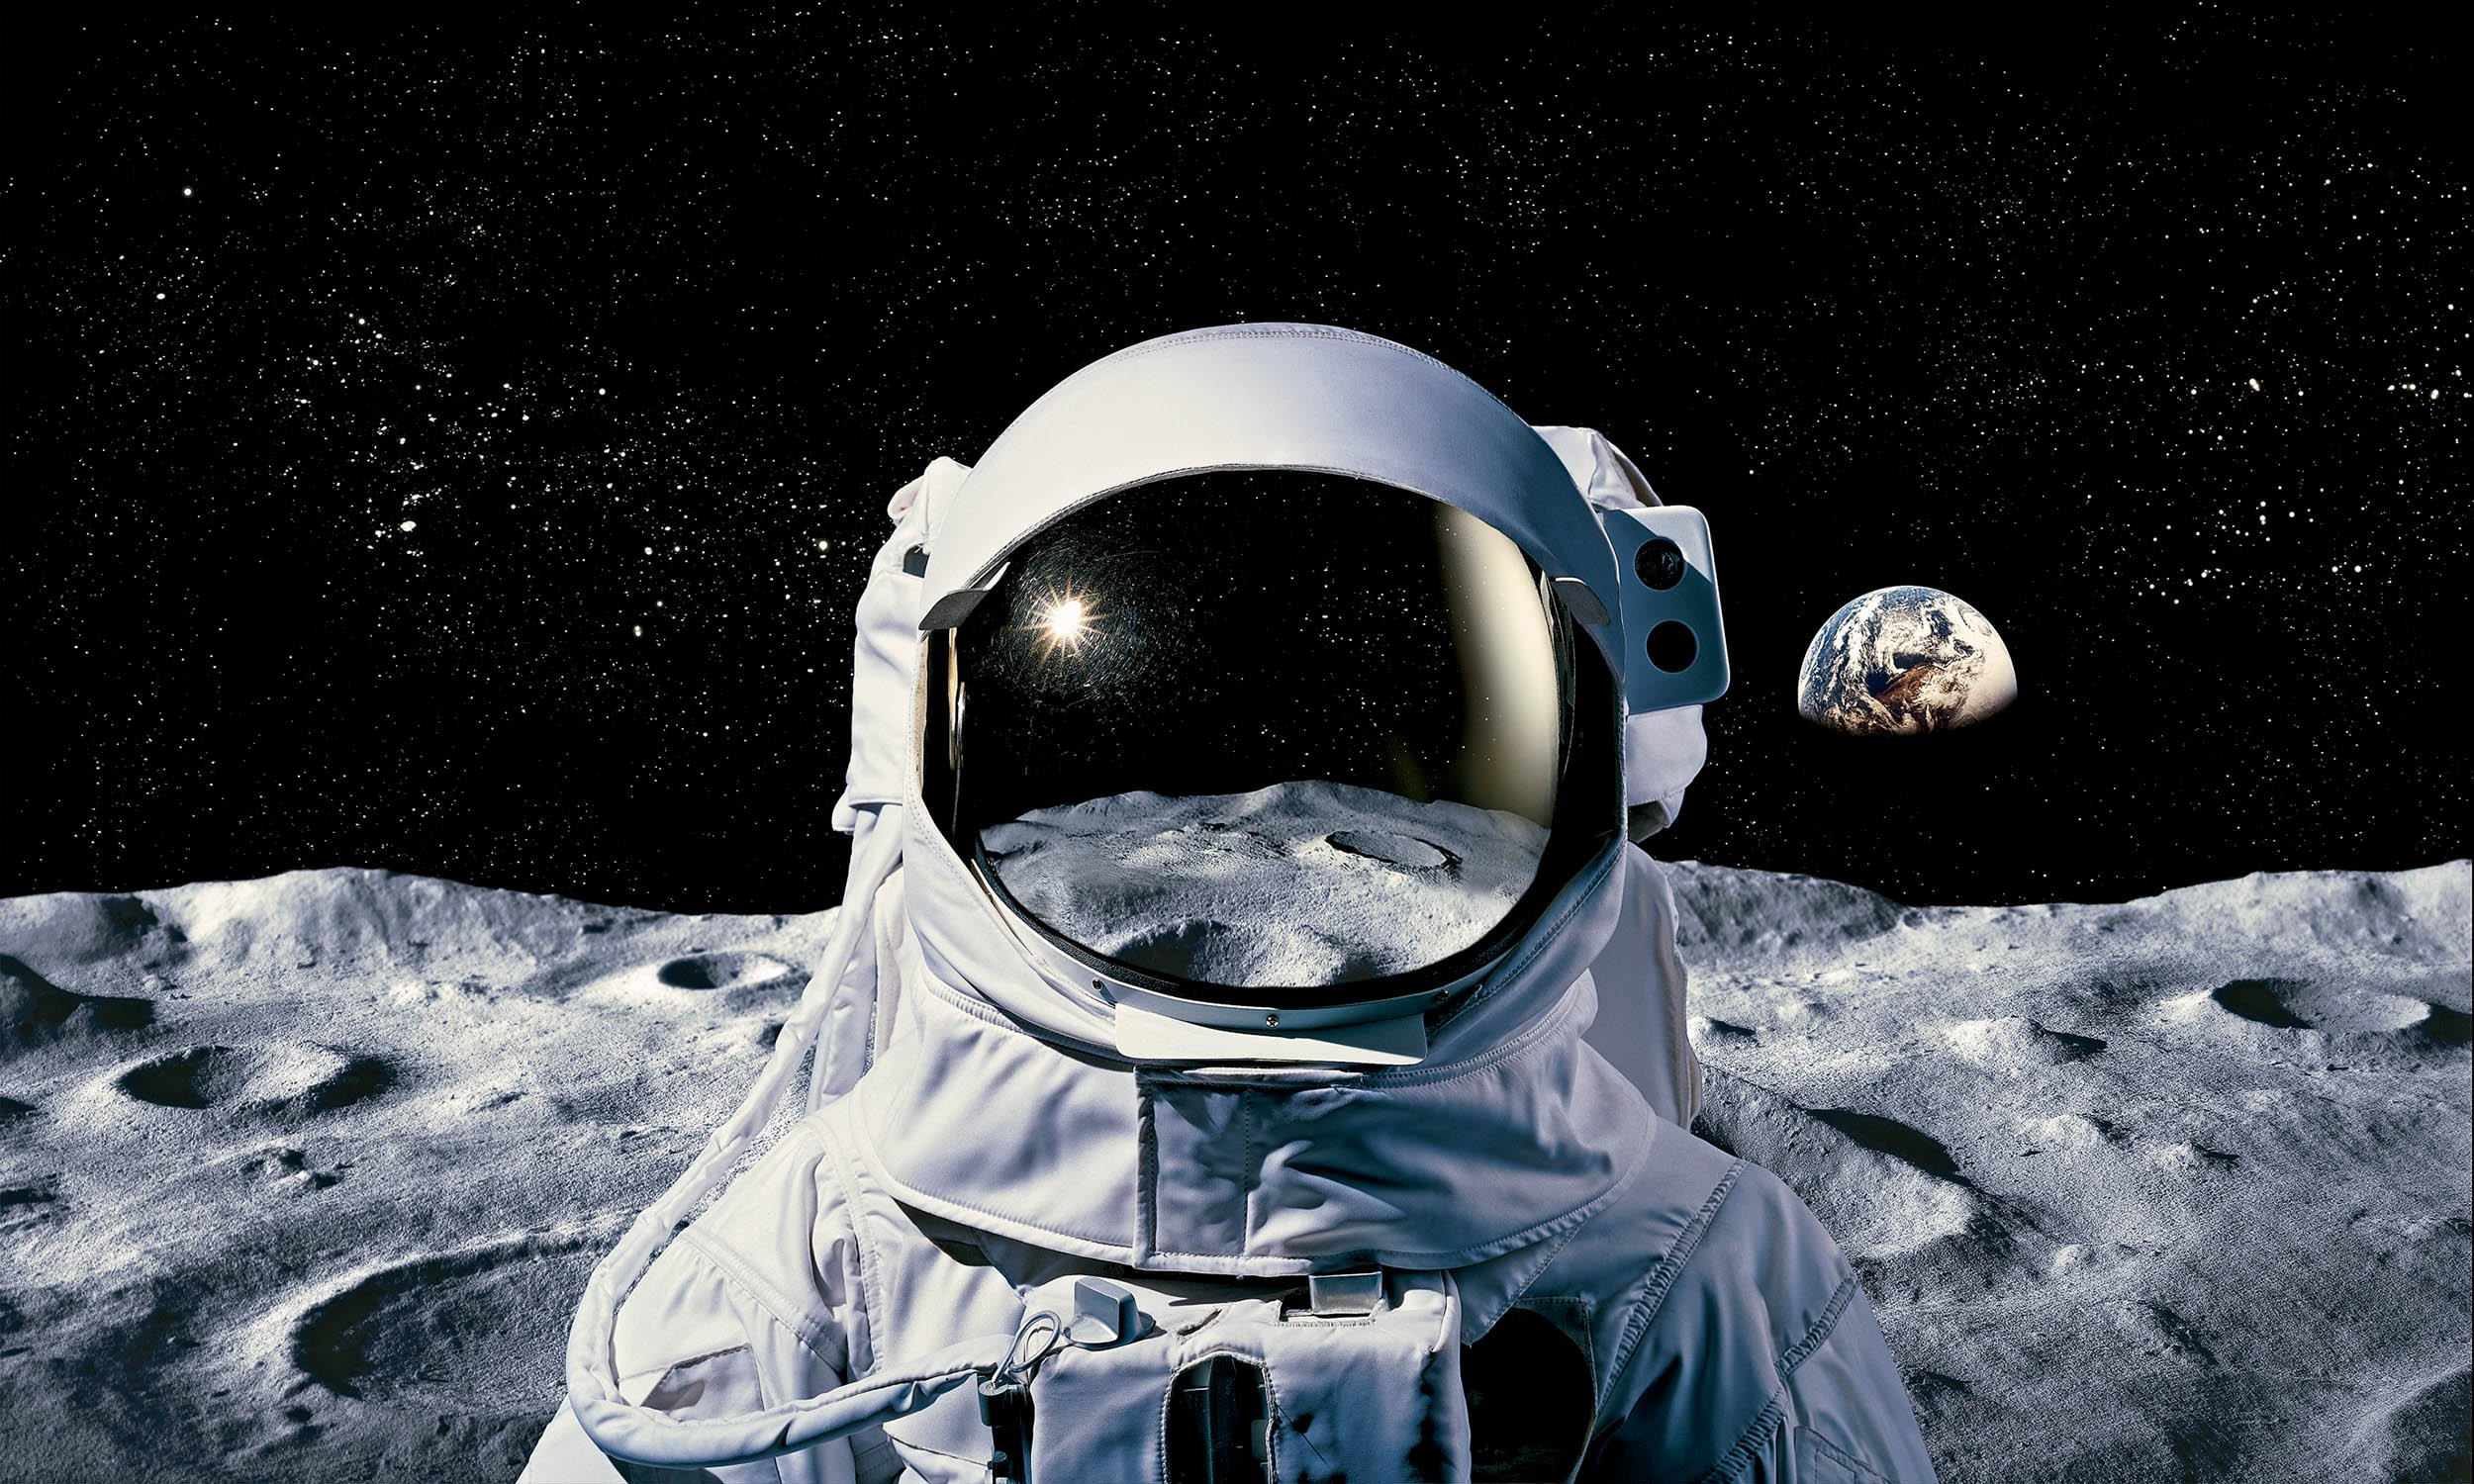 The Plan to Nuke the Moon and Other Cold War Plots Revealed in Secret Documents